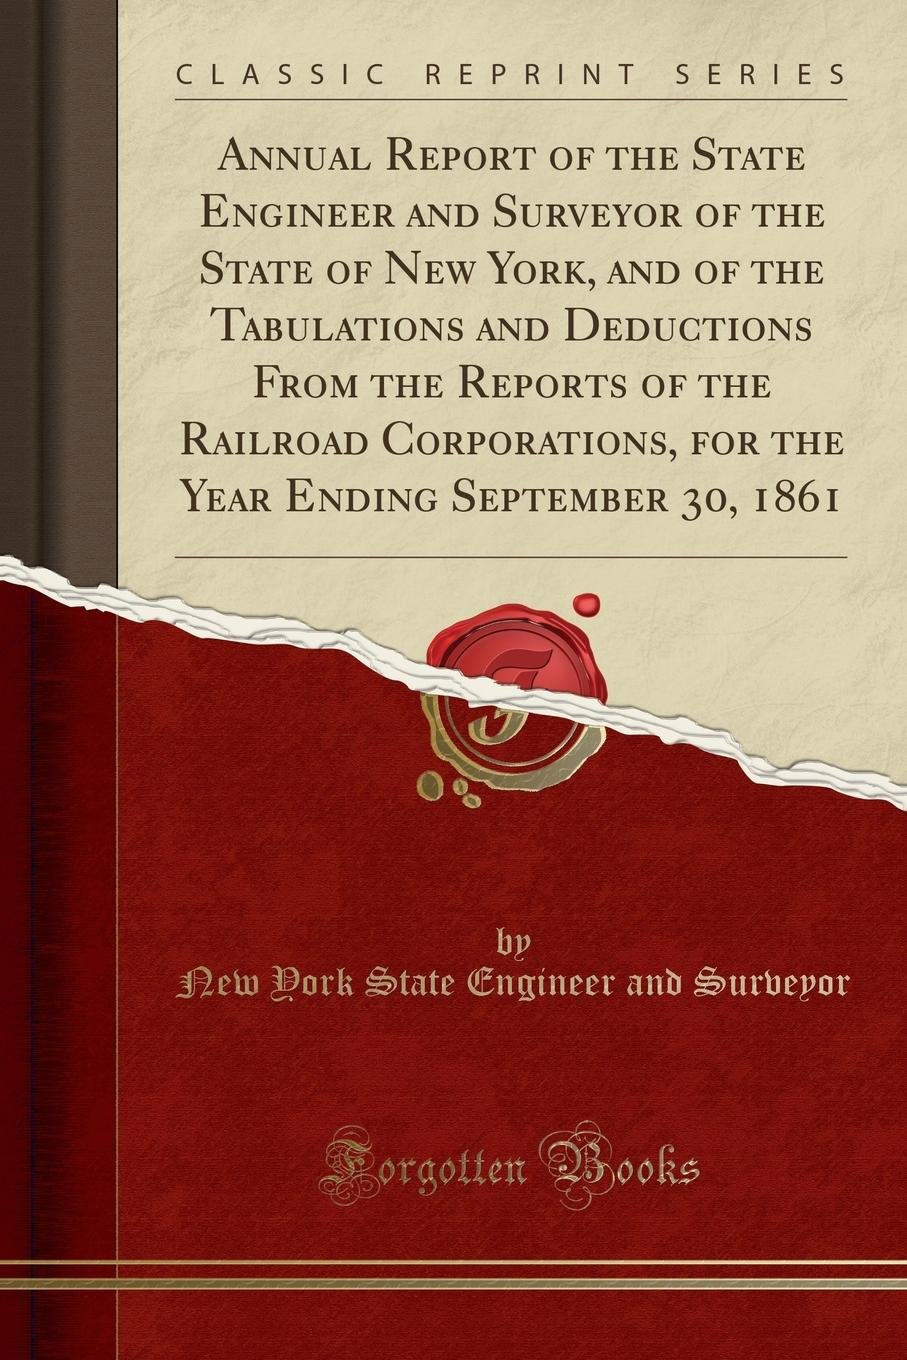 Read Online Annual Report of the State Engineer and Surveyor of the State of New York, and of the Tabulations and Deductions From the Reports of the Railroad ... Ending September 30, 1861 (Classic Reprint) pdf epub